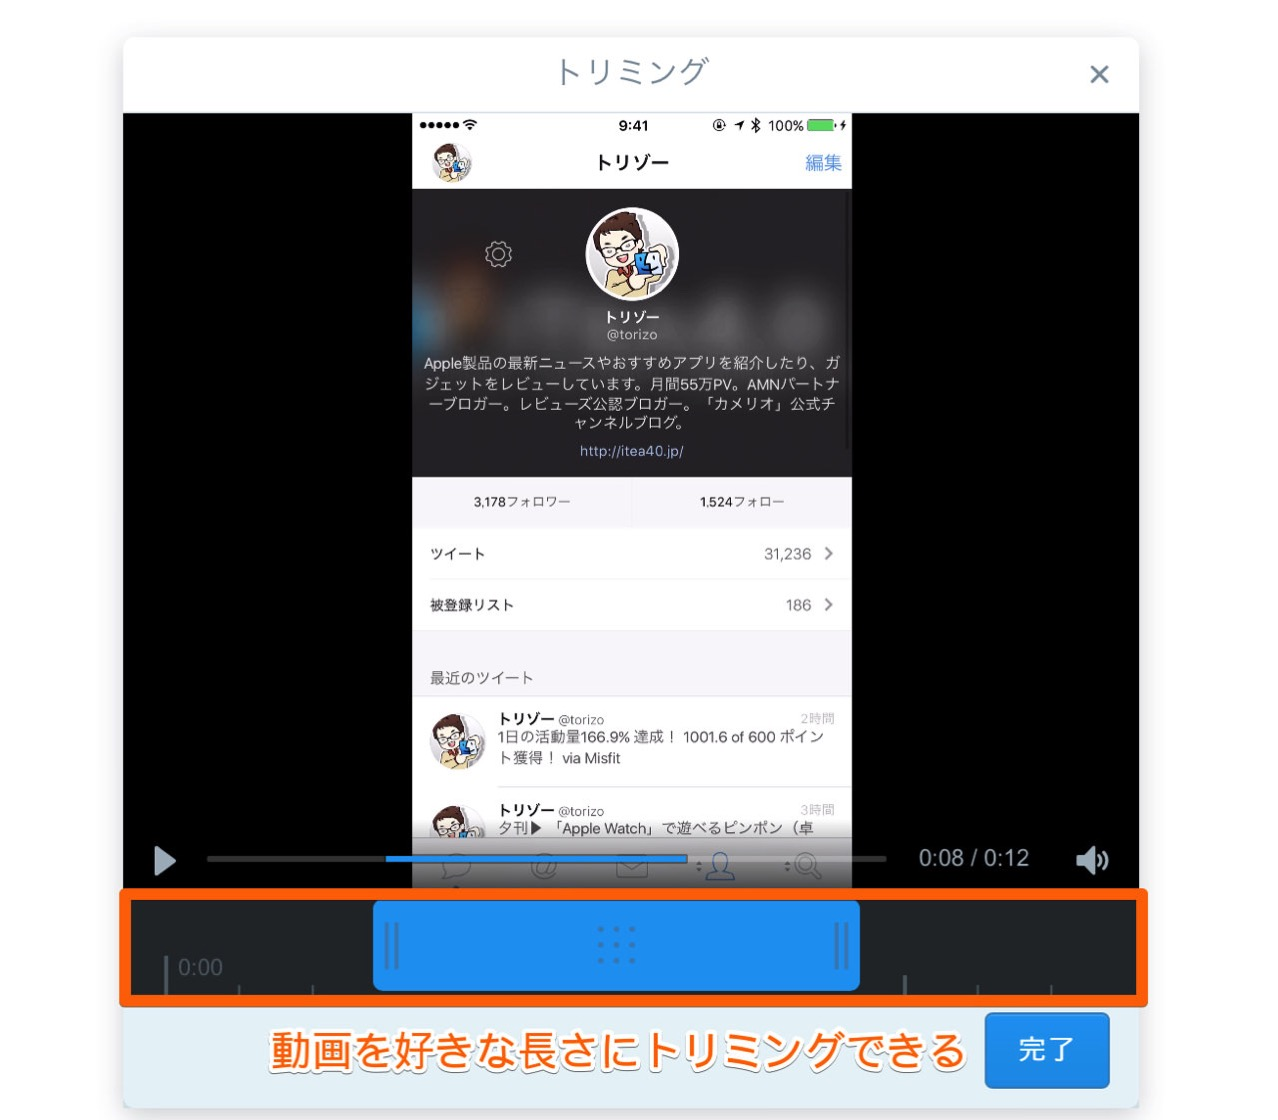 Added ability to send a video to direct message2